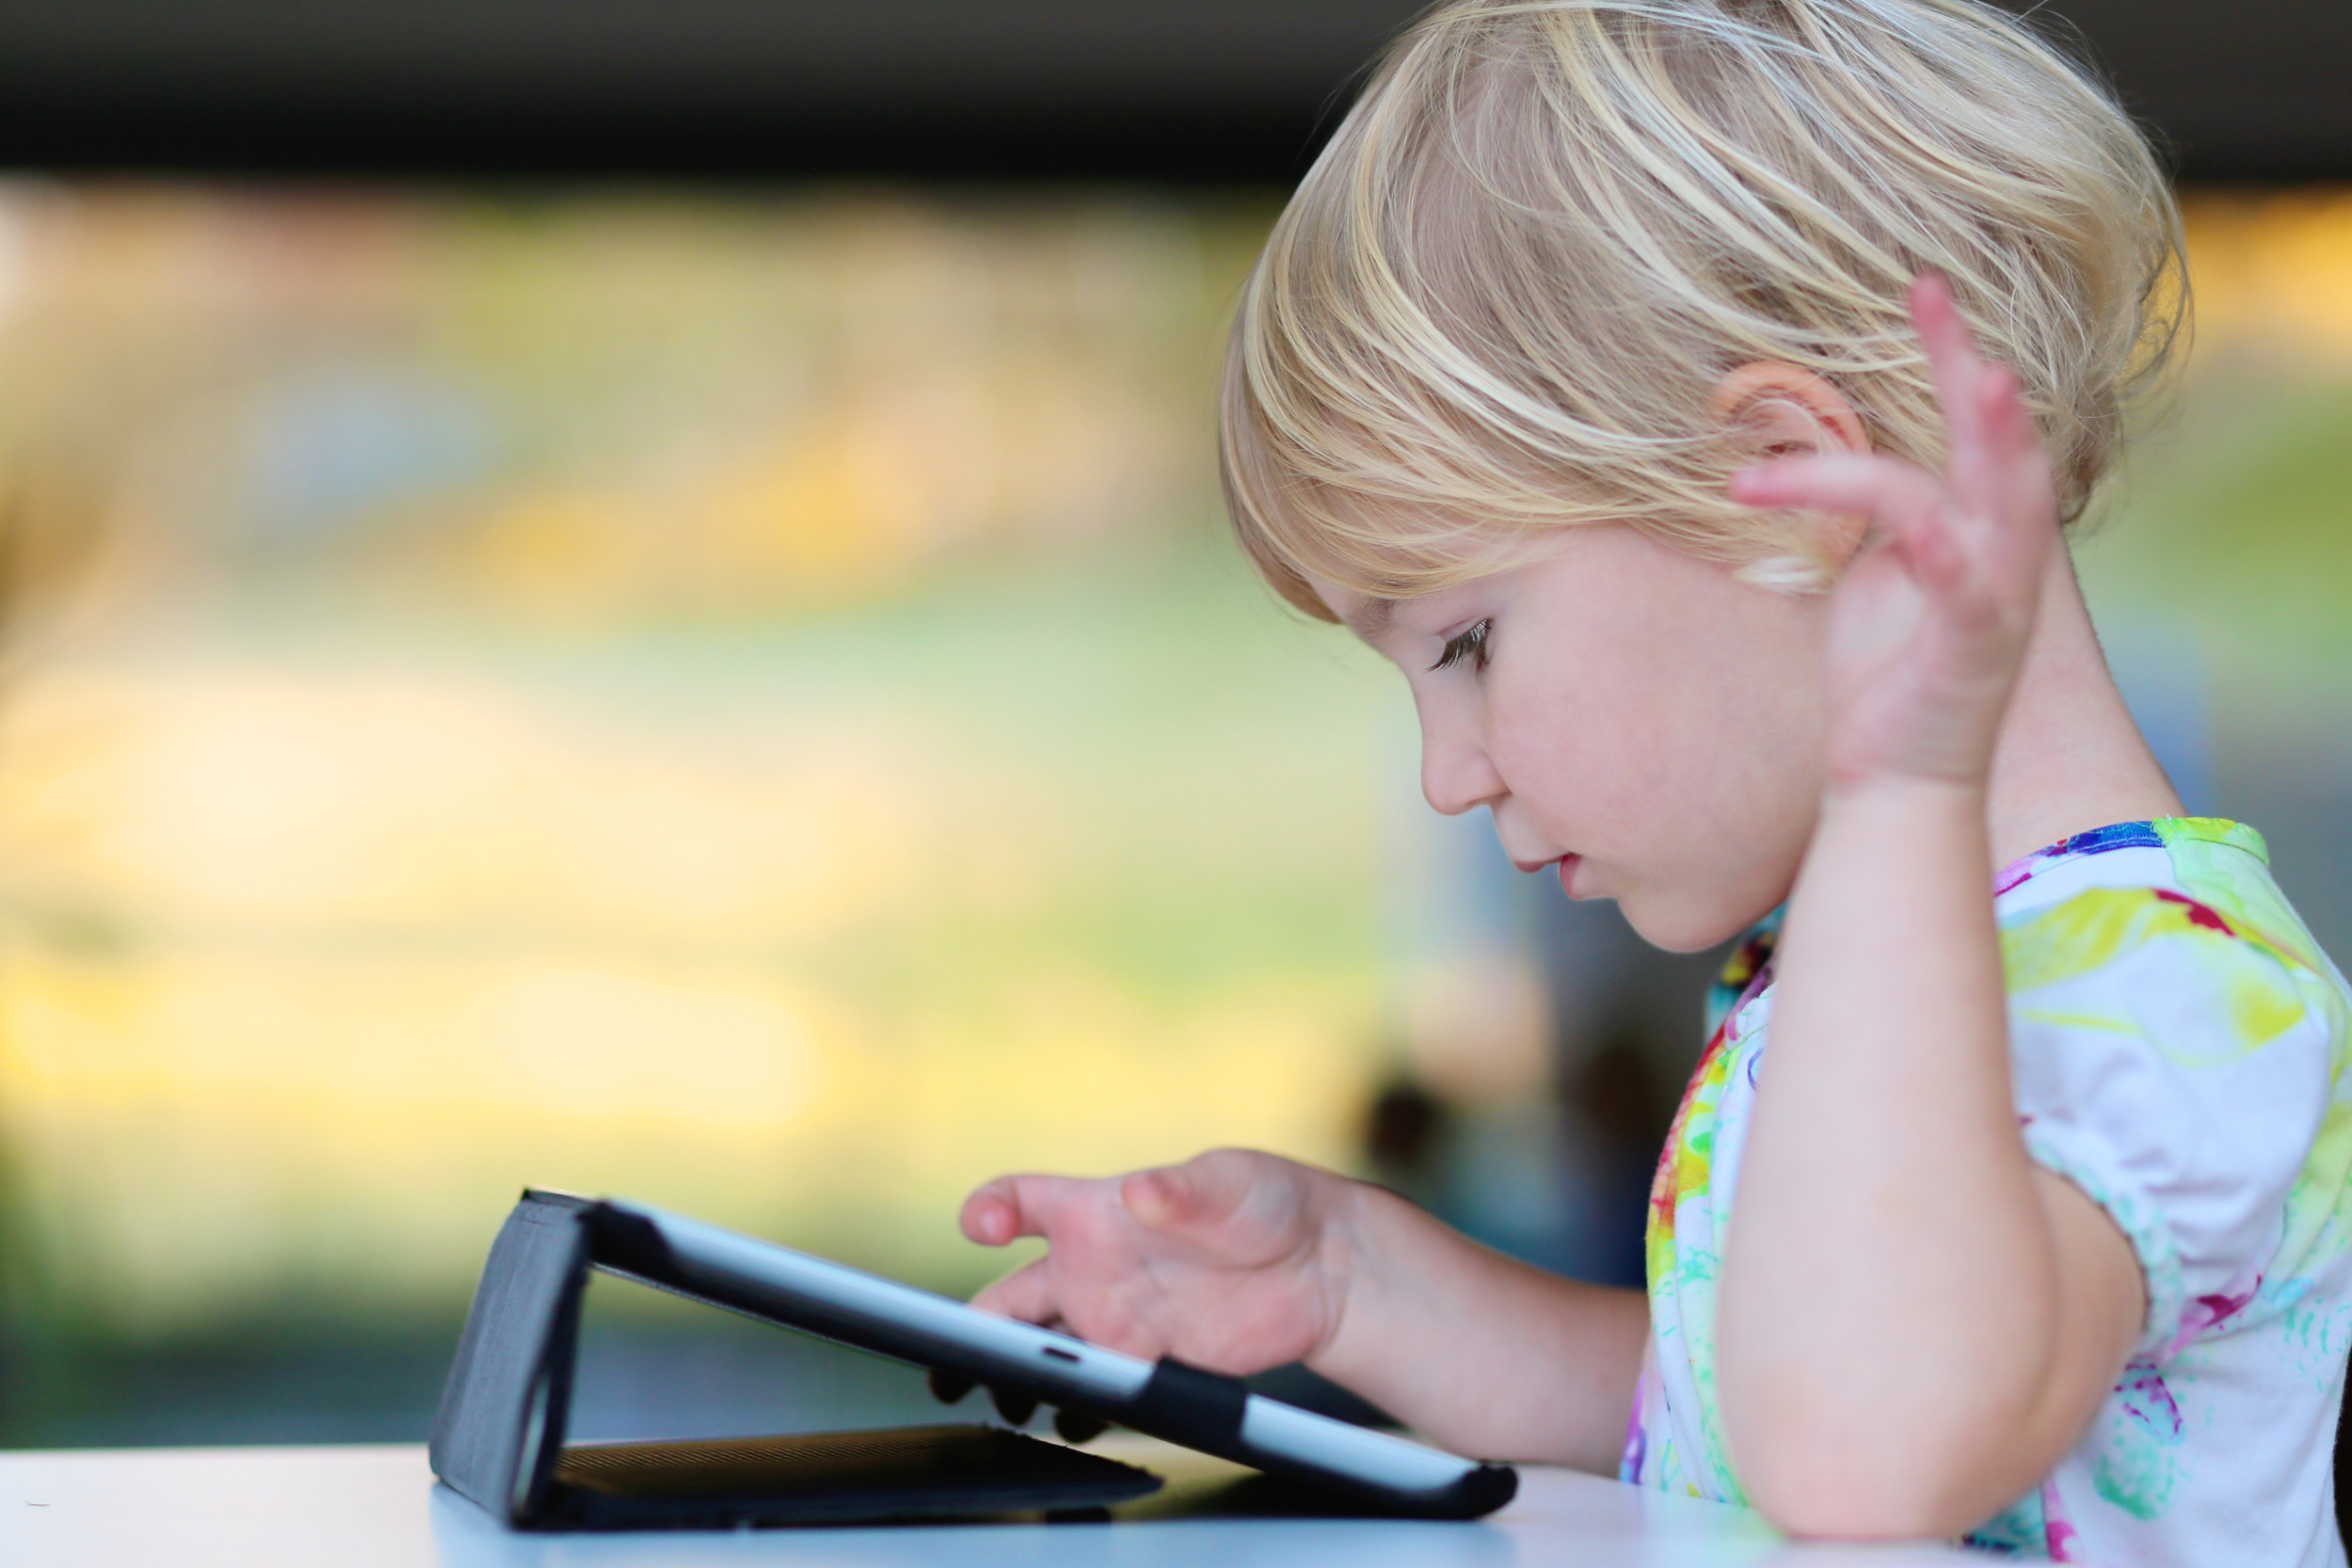 The case for a screen-free childhood